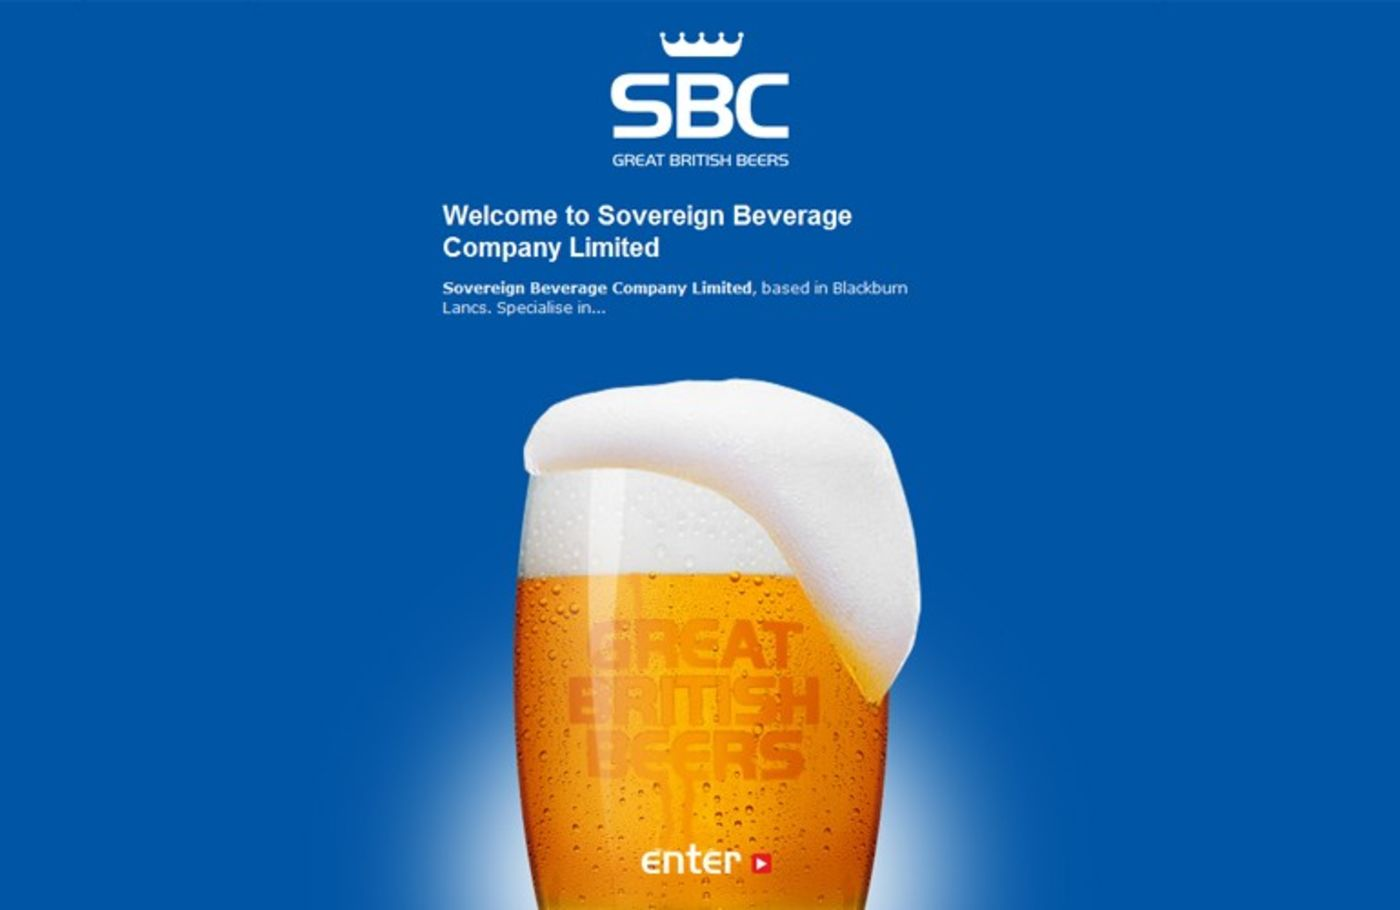 Sovereign Beverage Company Welcome